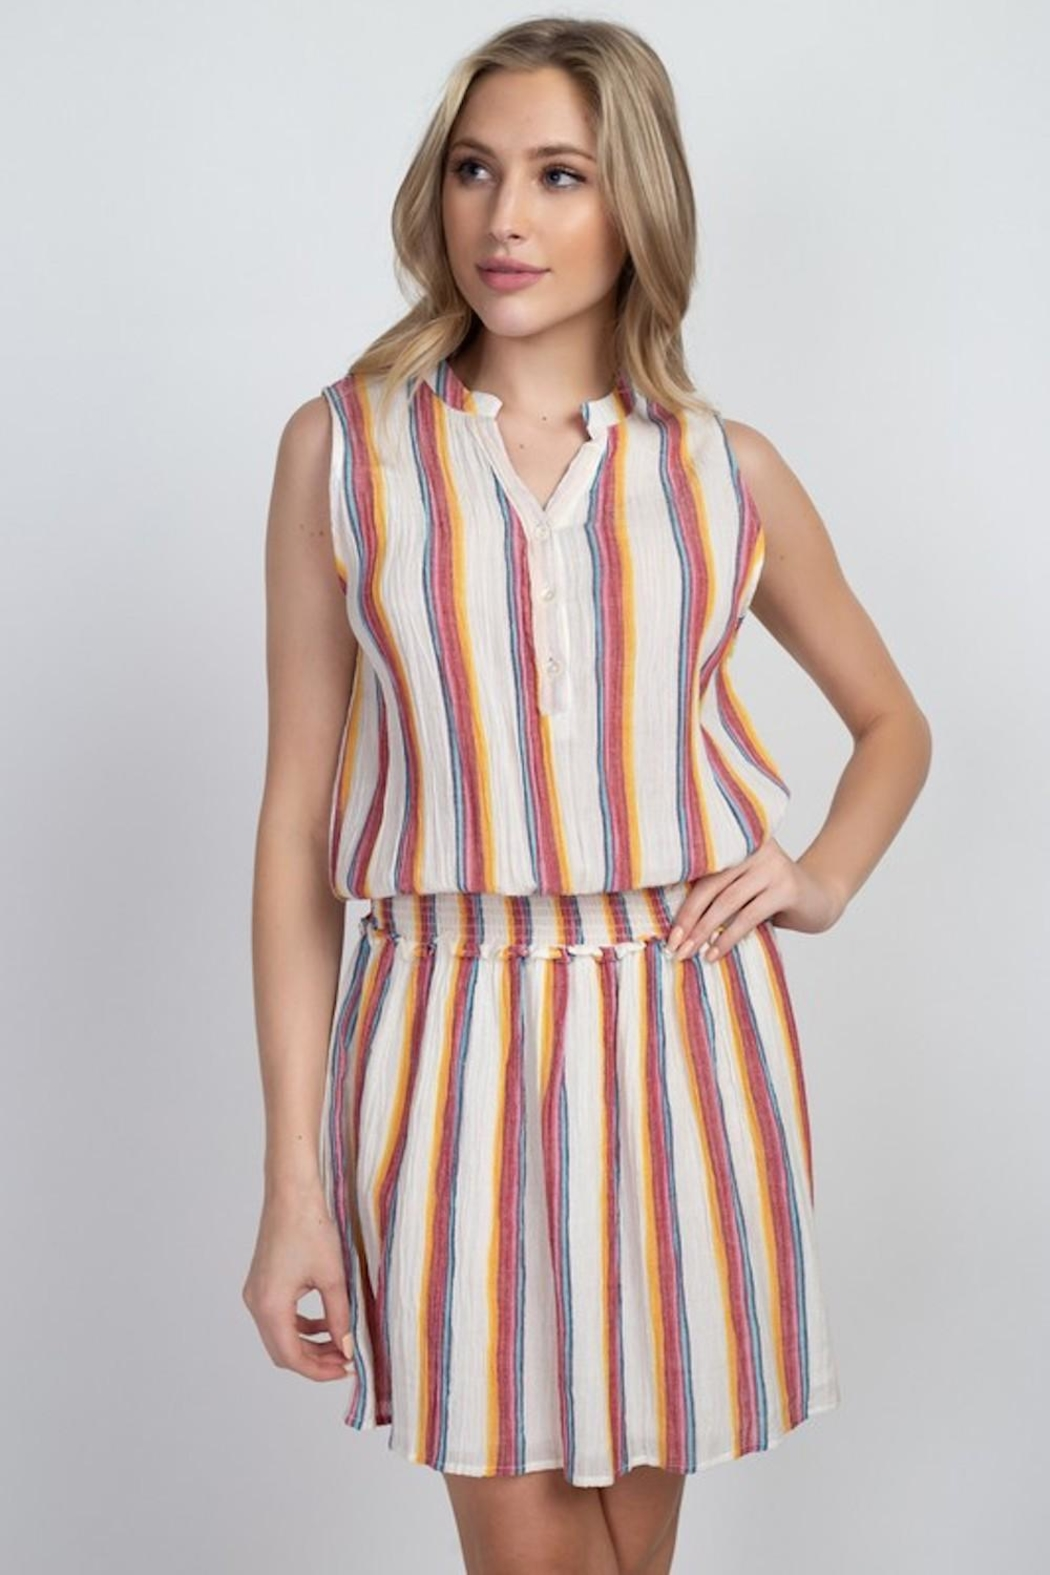 En Creme Colorful Stripes Dress - Main Image